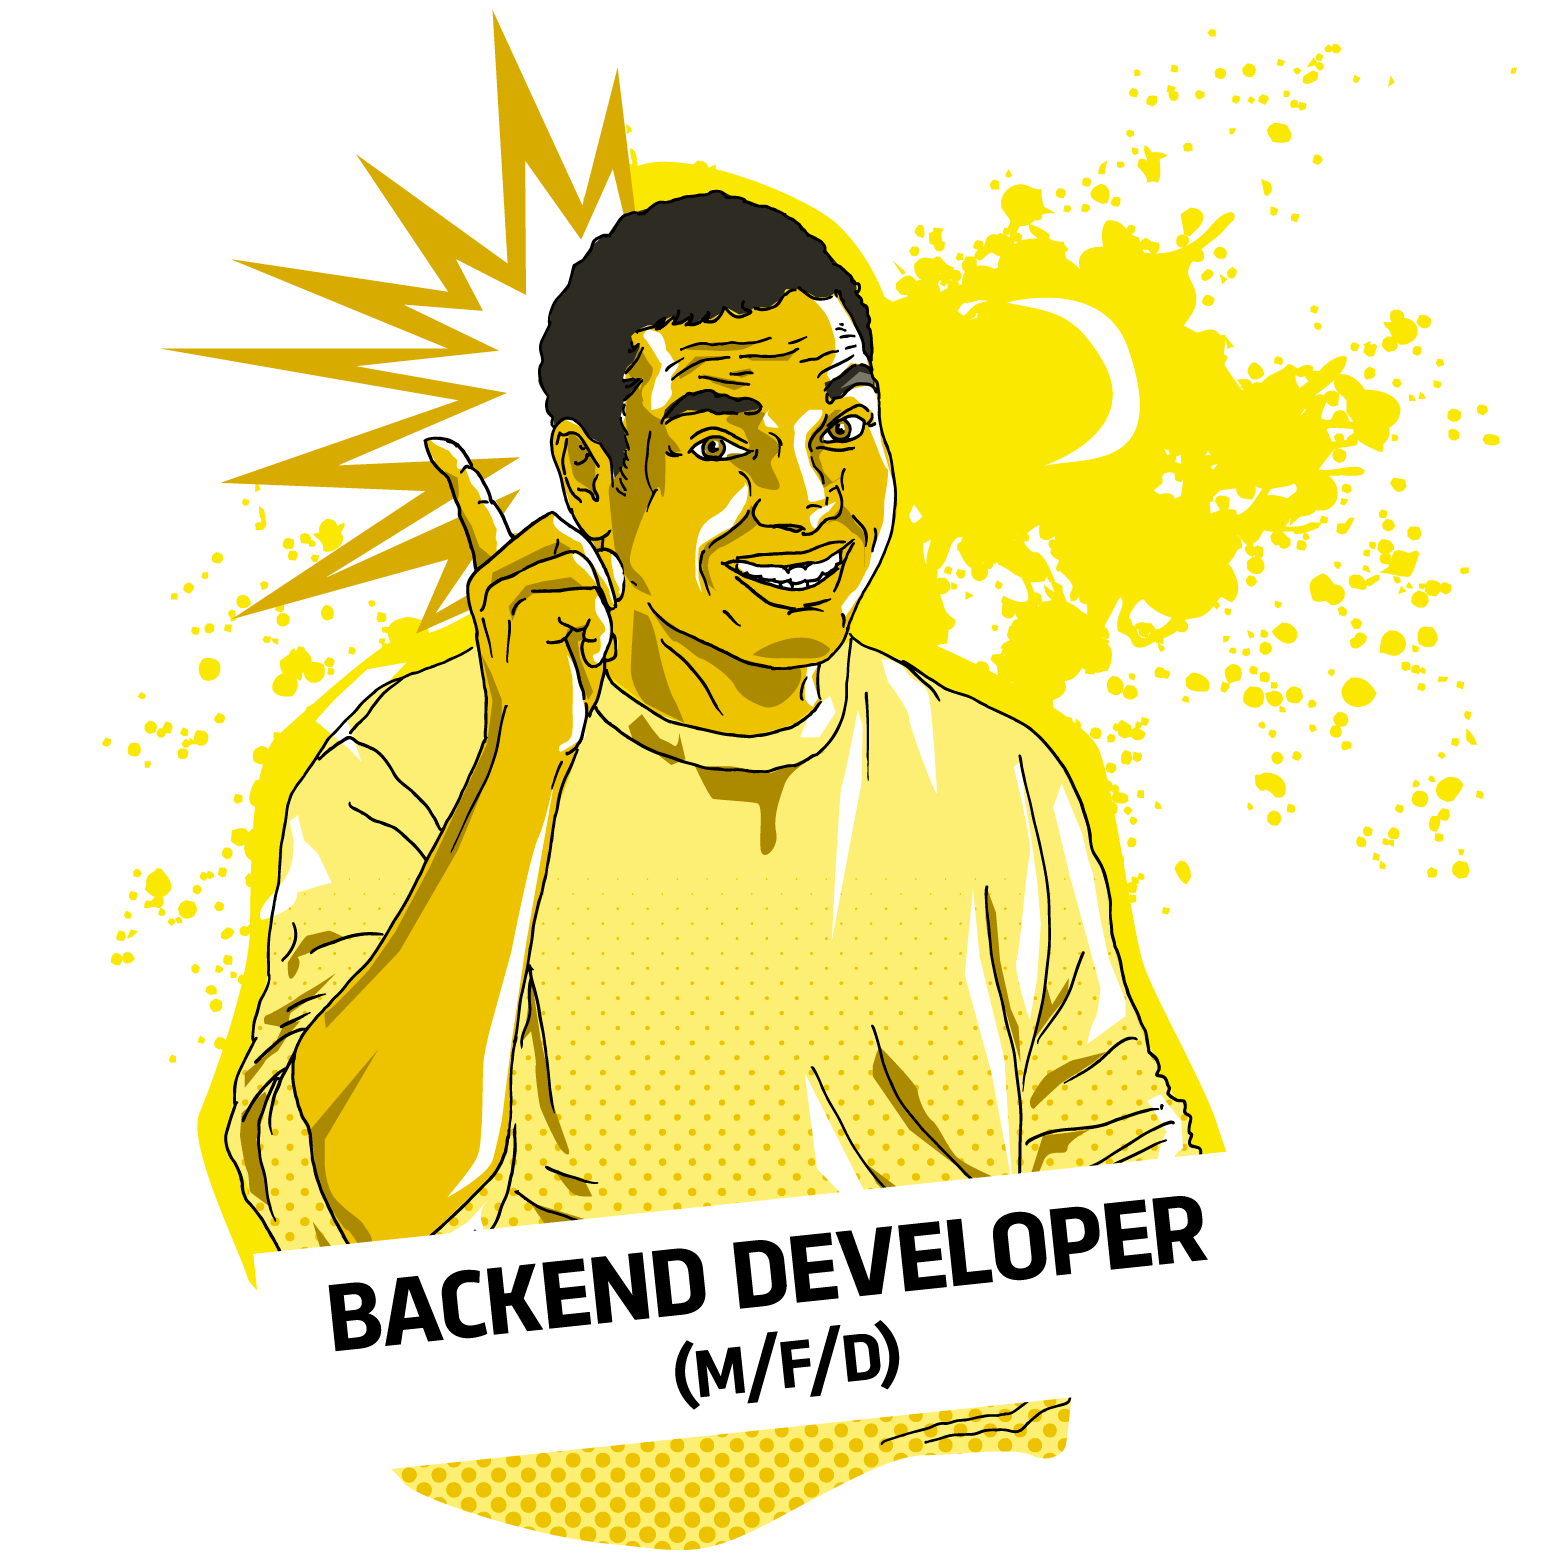 Backend Developer Blackbit